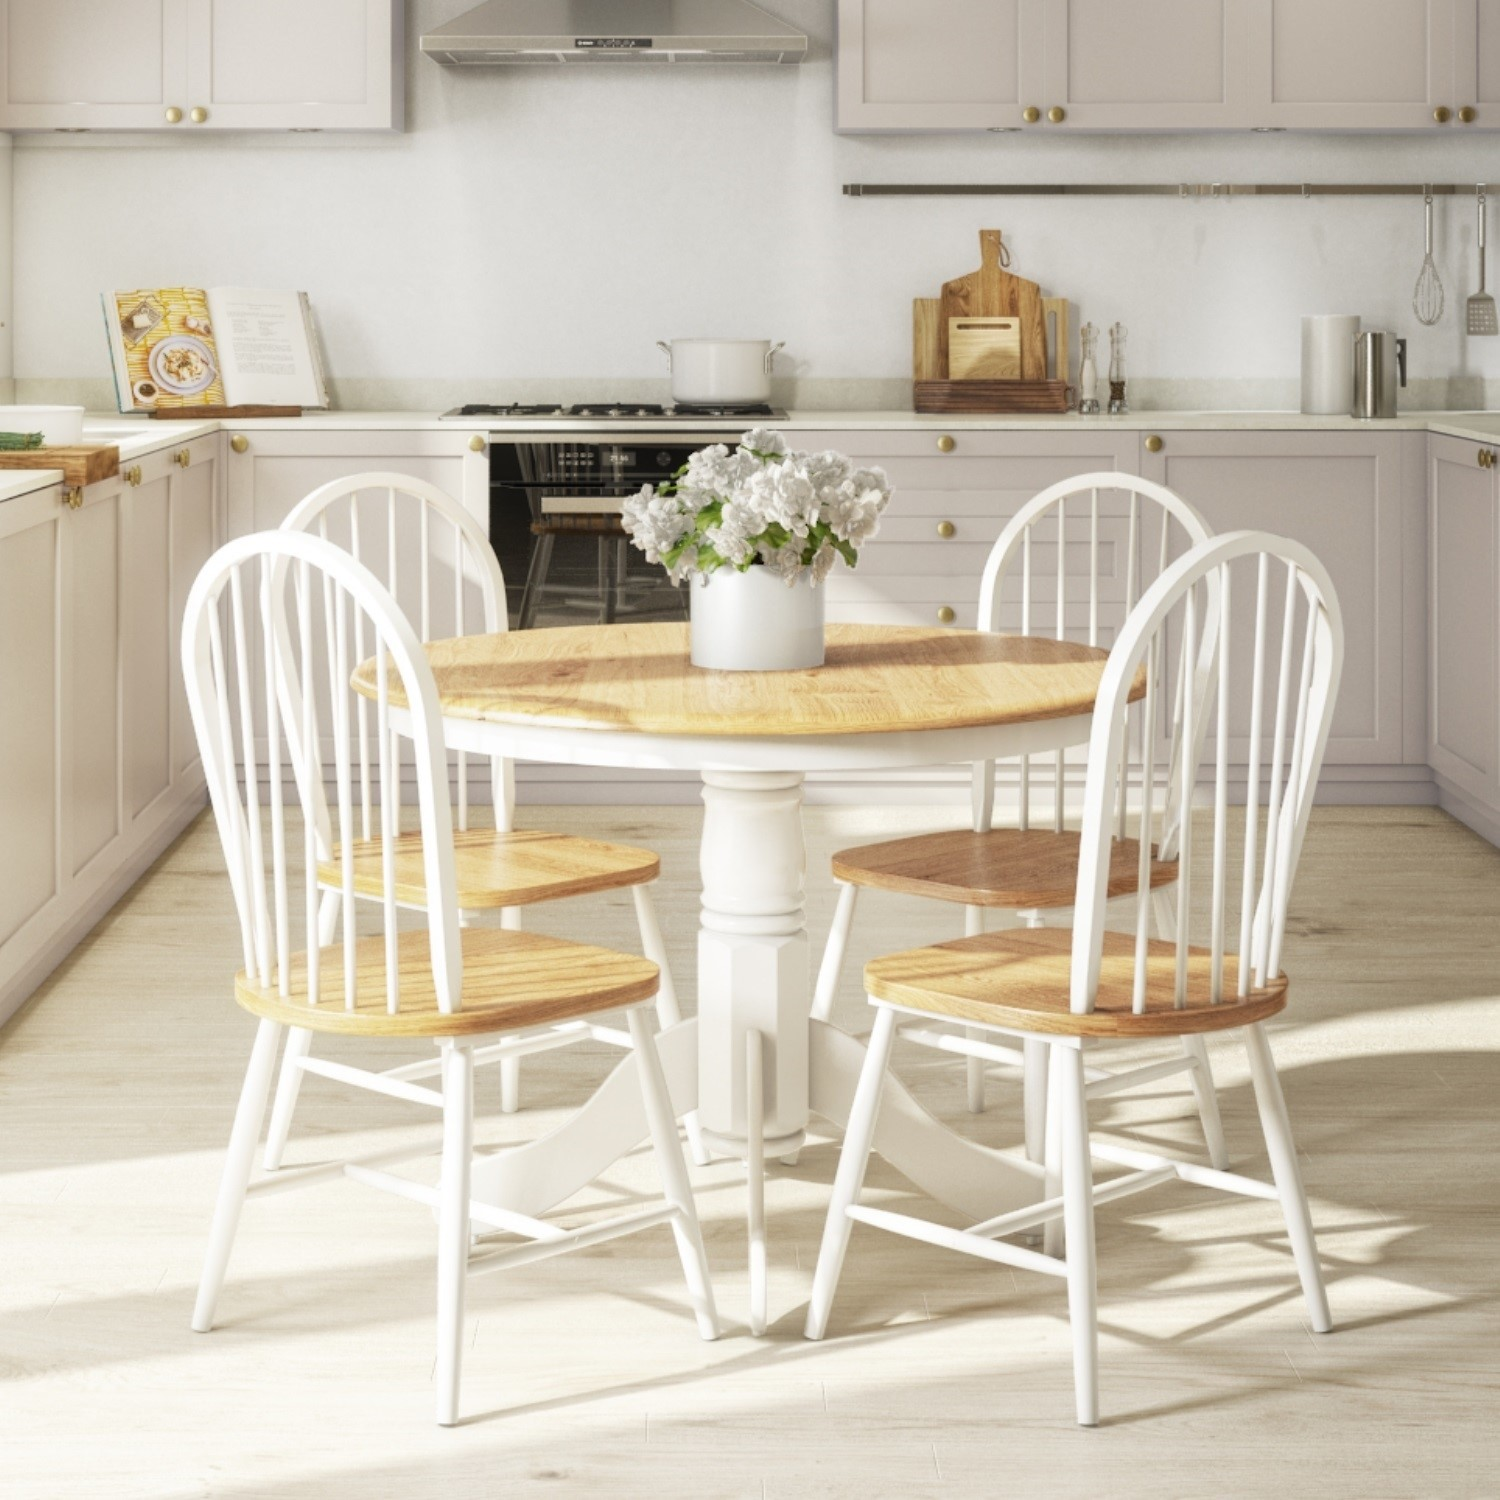 rhode island natural white round dining table and 4 chairs set rh furniture123 co uk round table kitchen dining sets small round kitchen table and chairs set